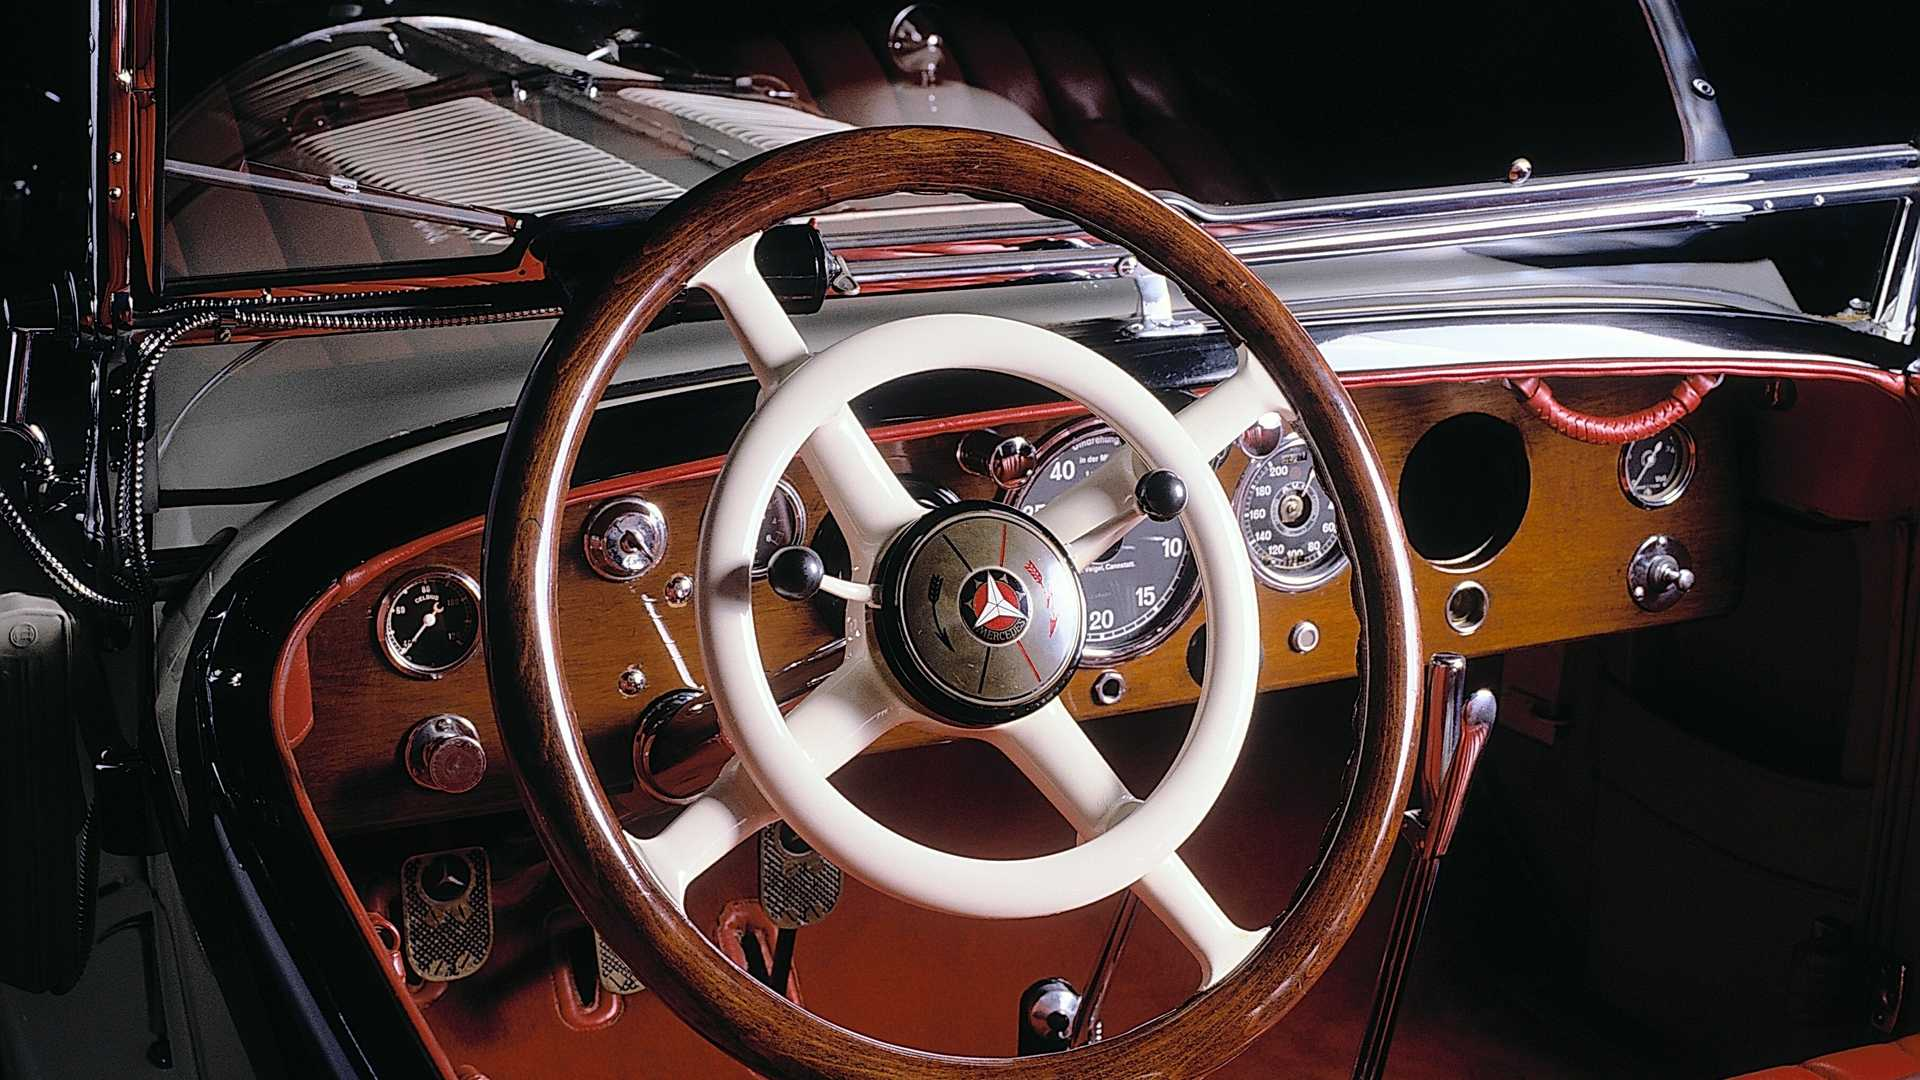 History Of The Steering Wheel From 1886 To Present